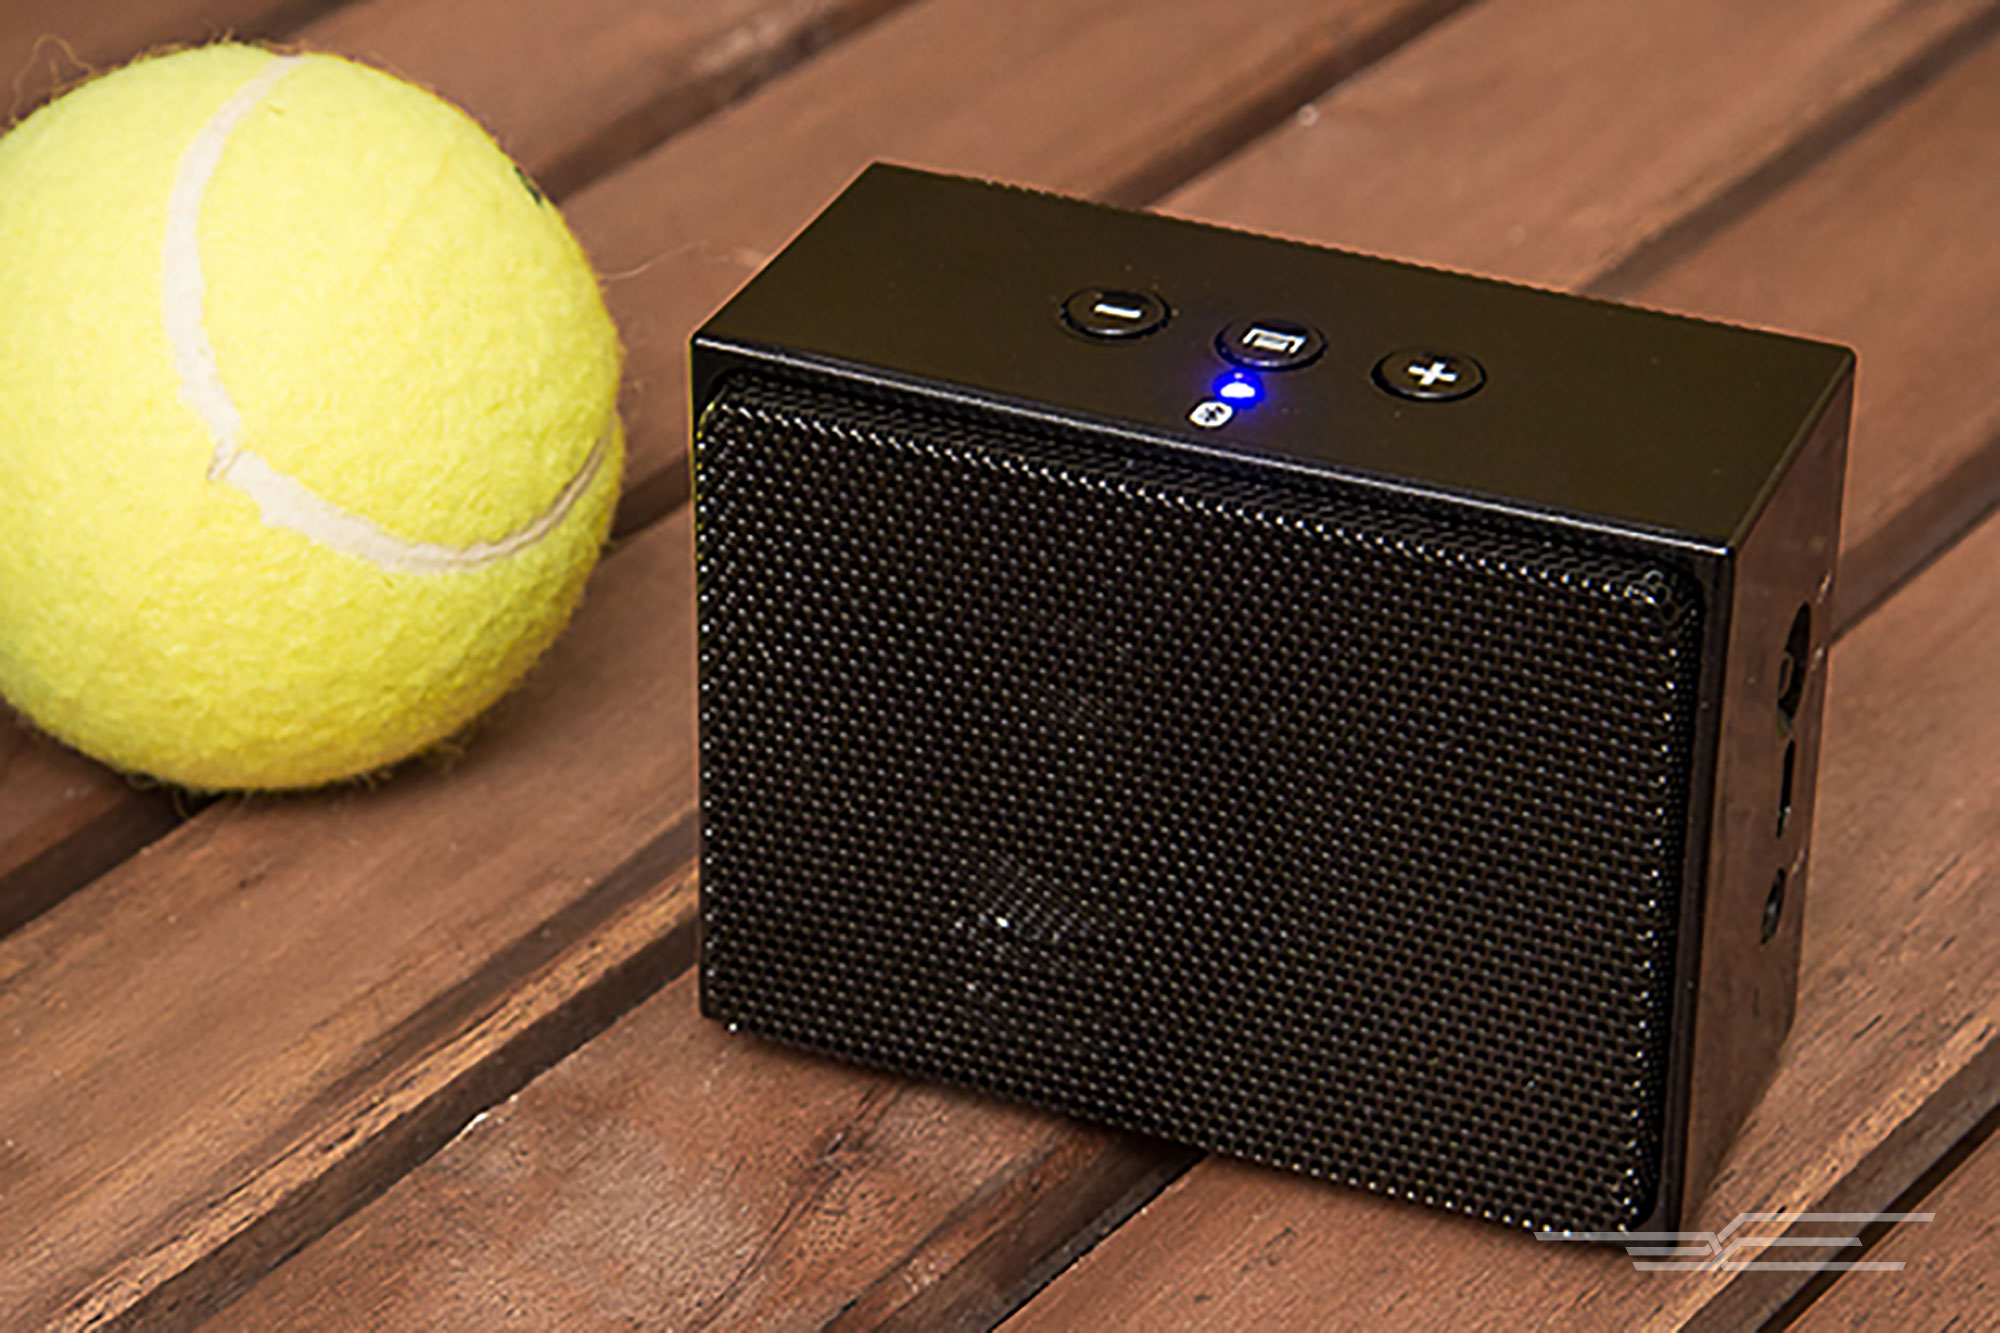 loud portable bluetooth speakers. the btv2 delivers good sound for its size and price, even includes a speakerphone function neoprene carrying pouch. loud portable bluetooth speakers k